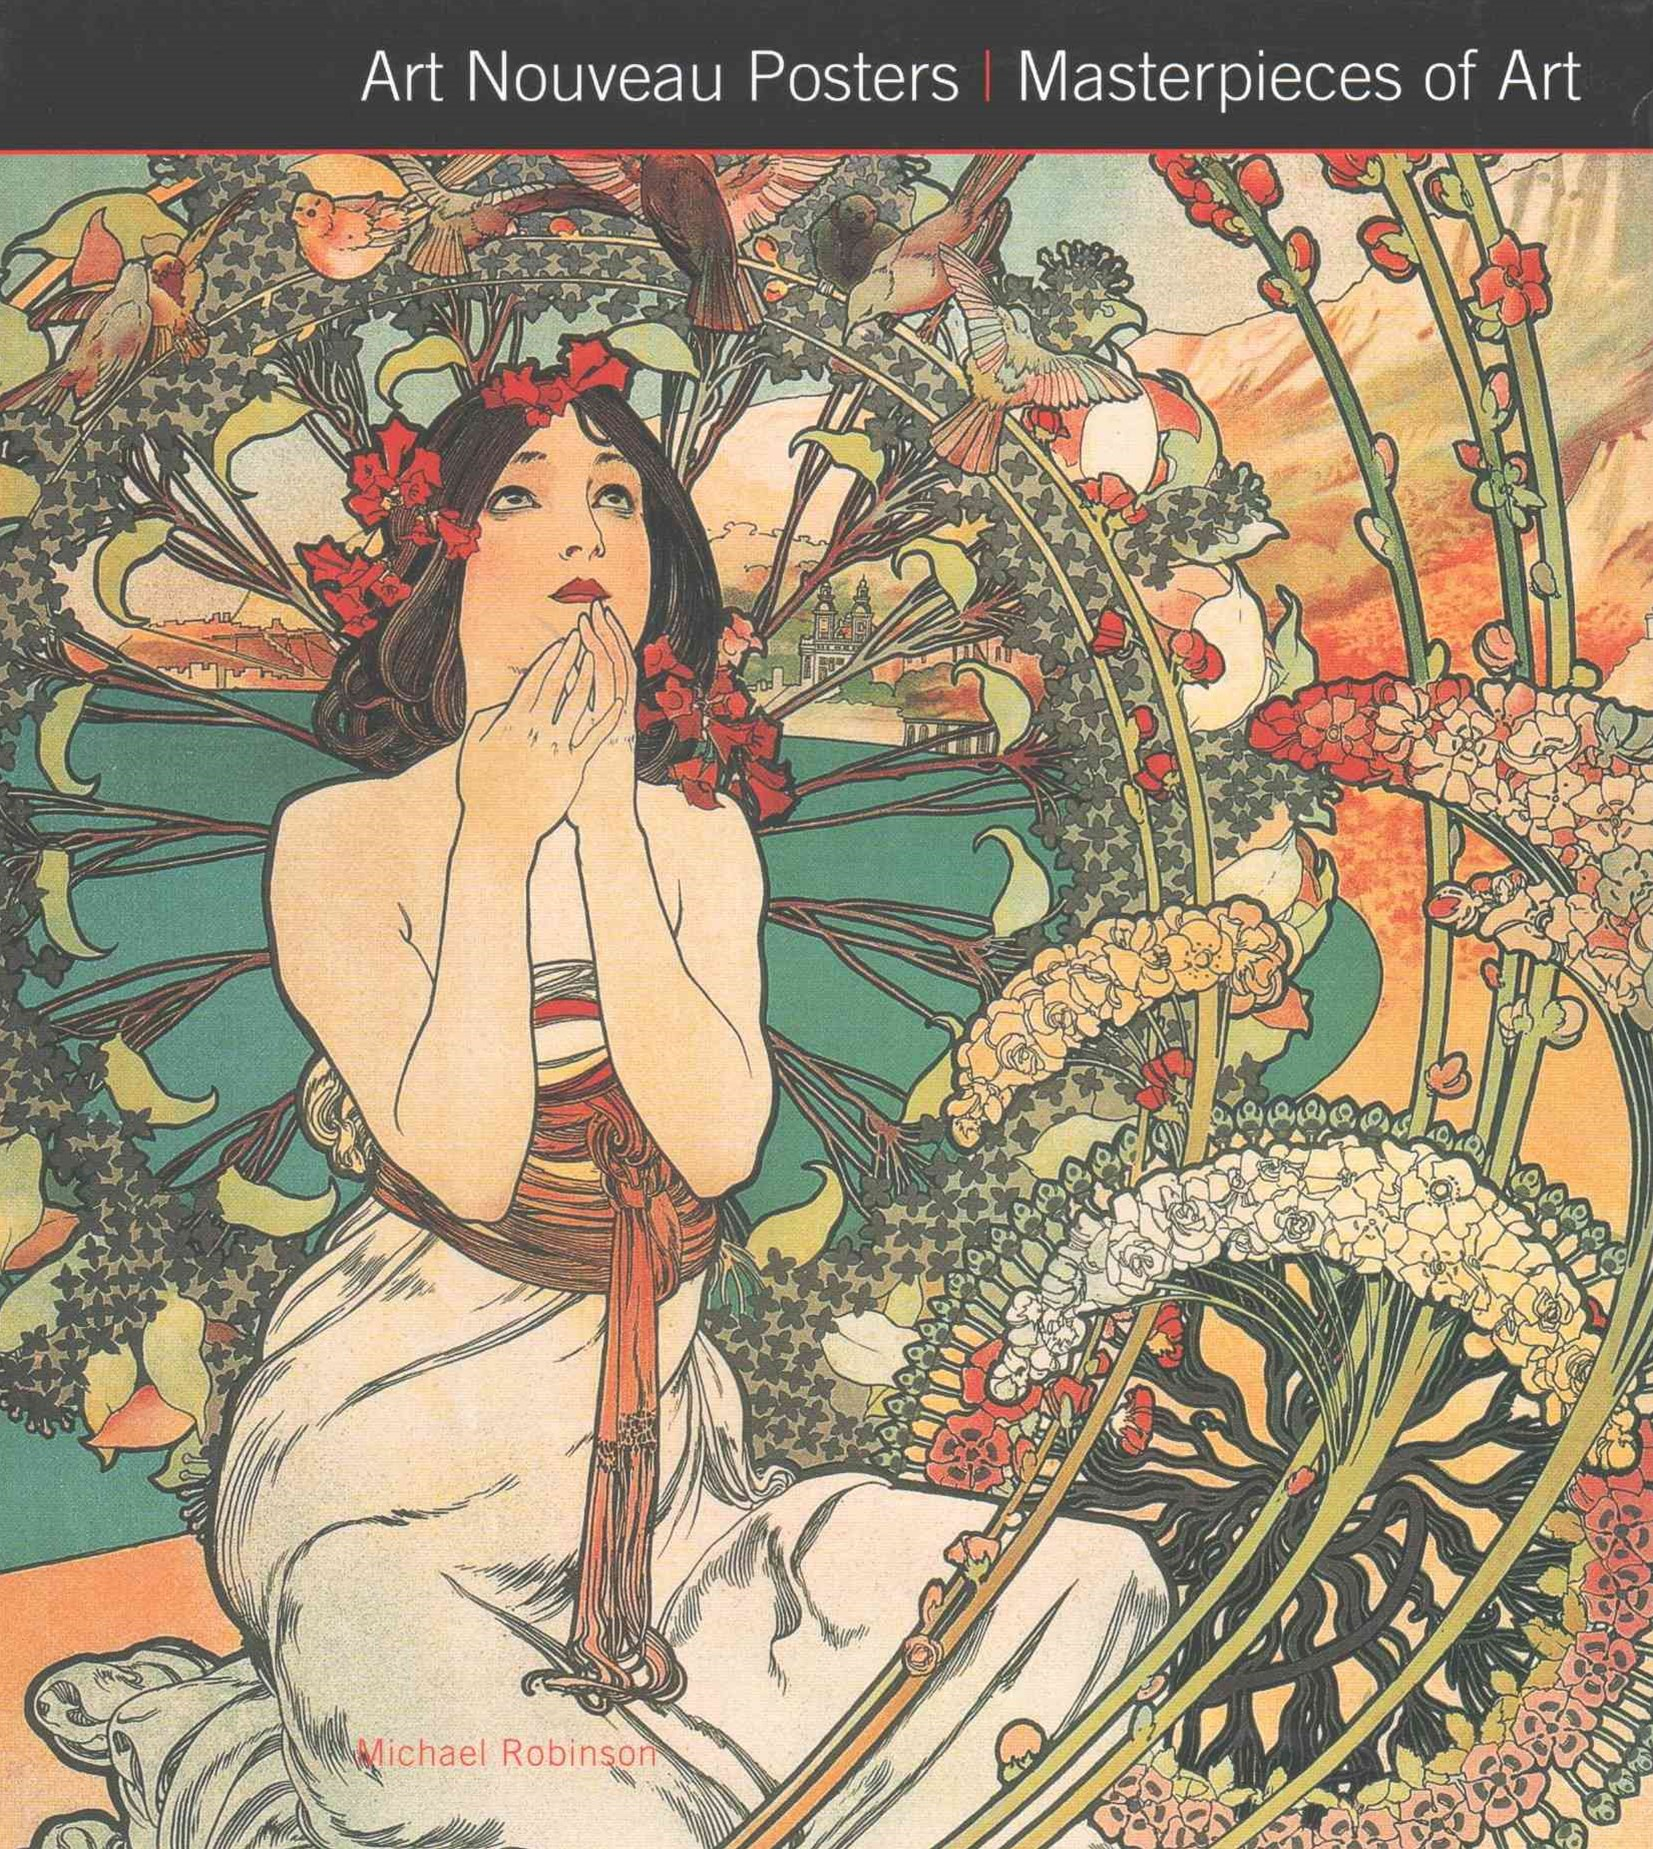 Art Nouveau Posters: Masterpieces of Art